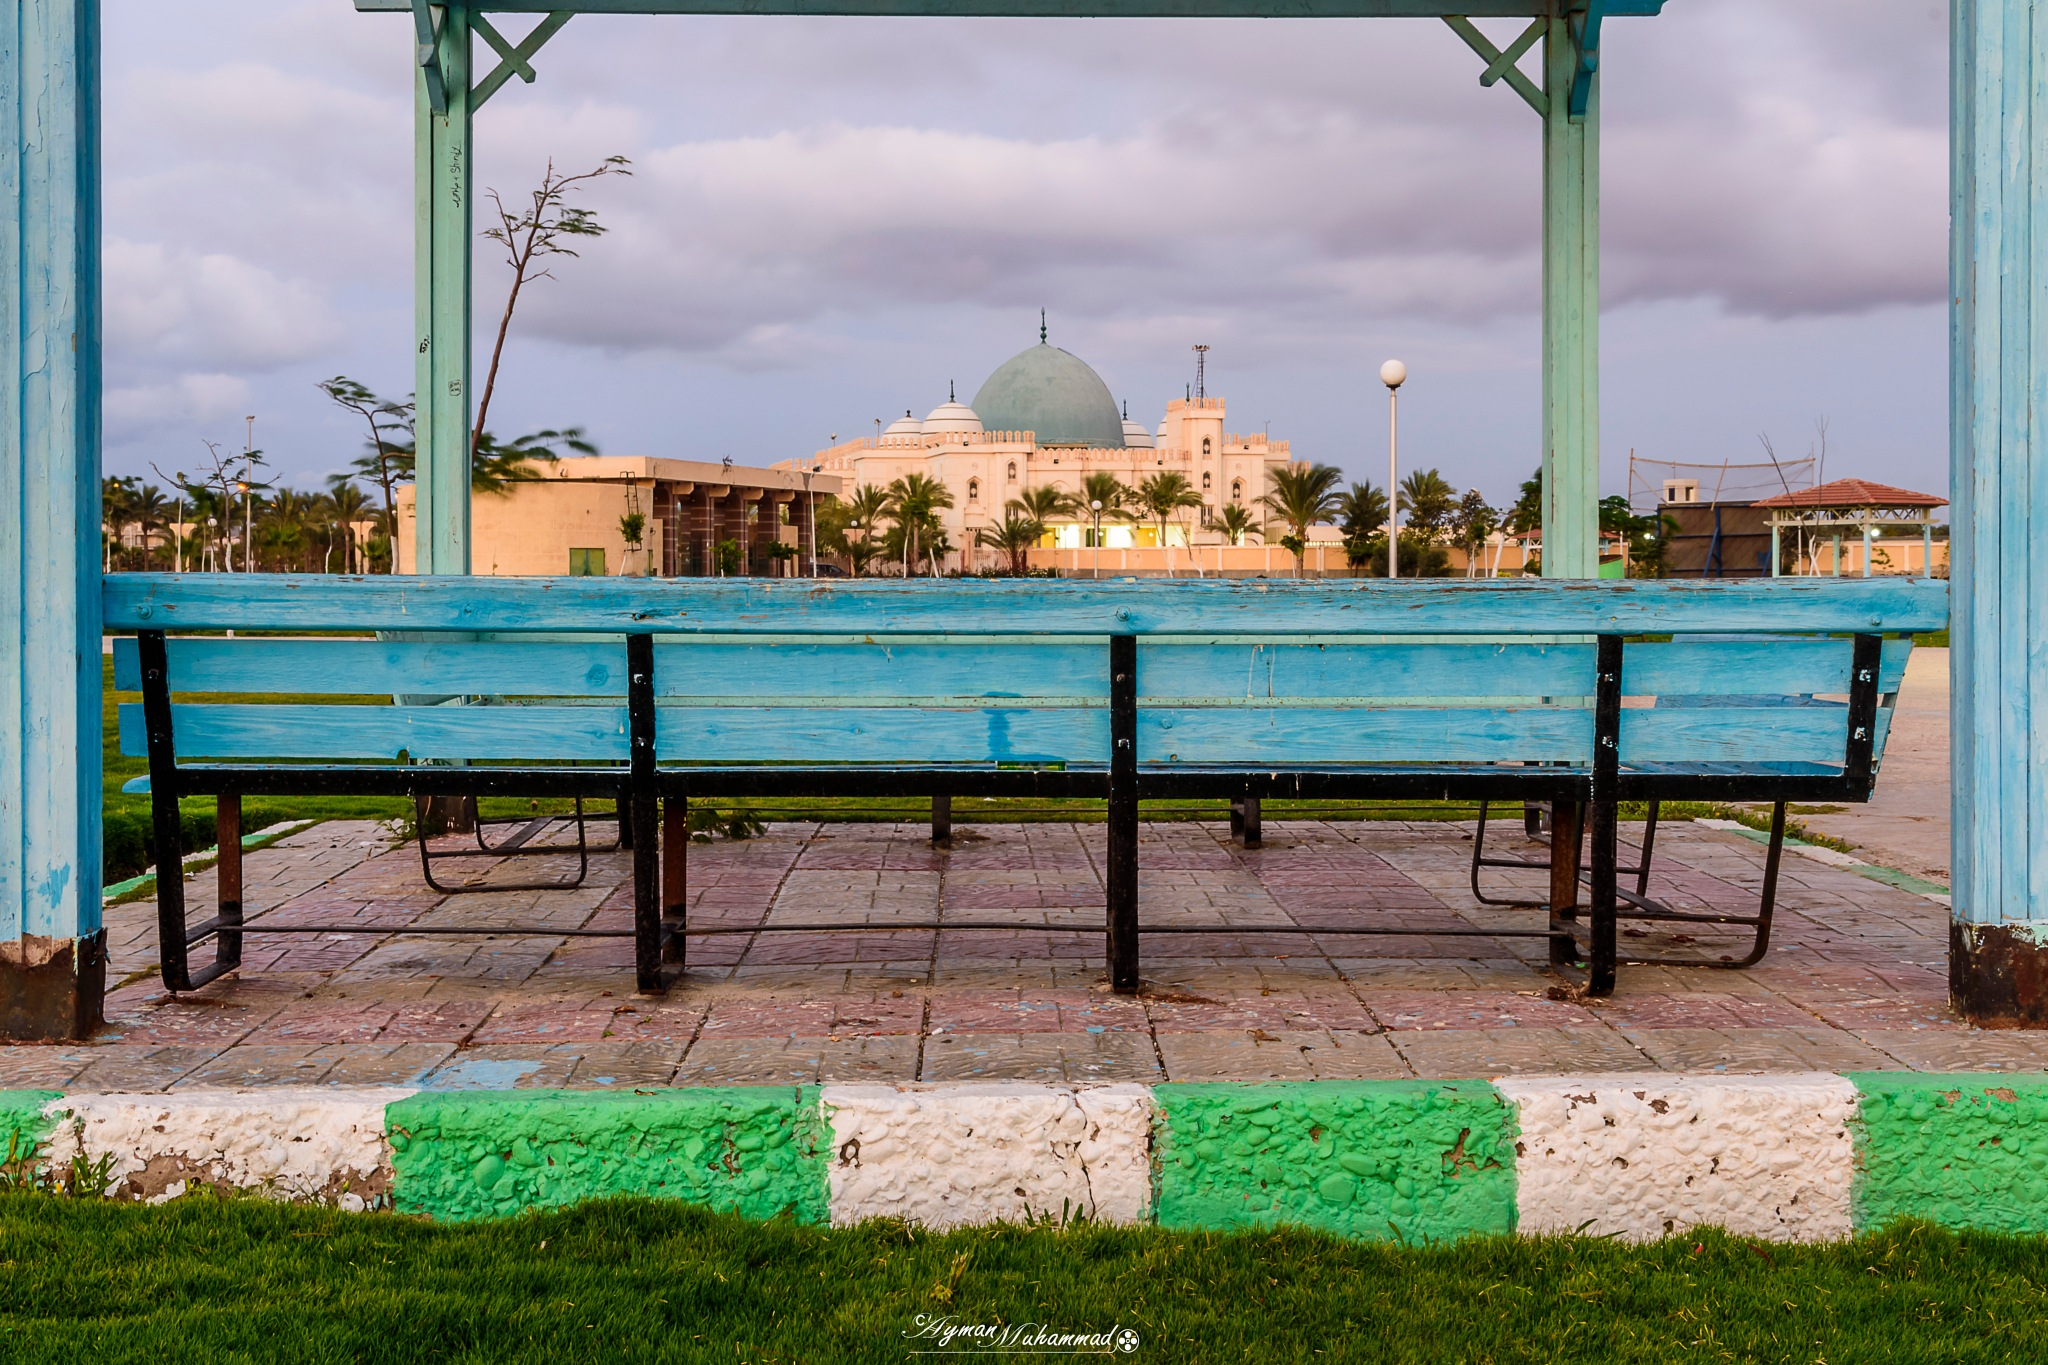 Garden view - Framed Mosque at winter day by AymanMuhammad